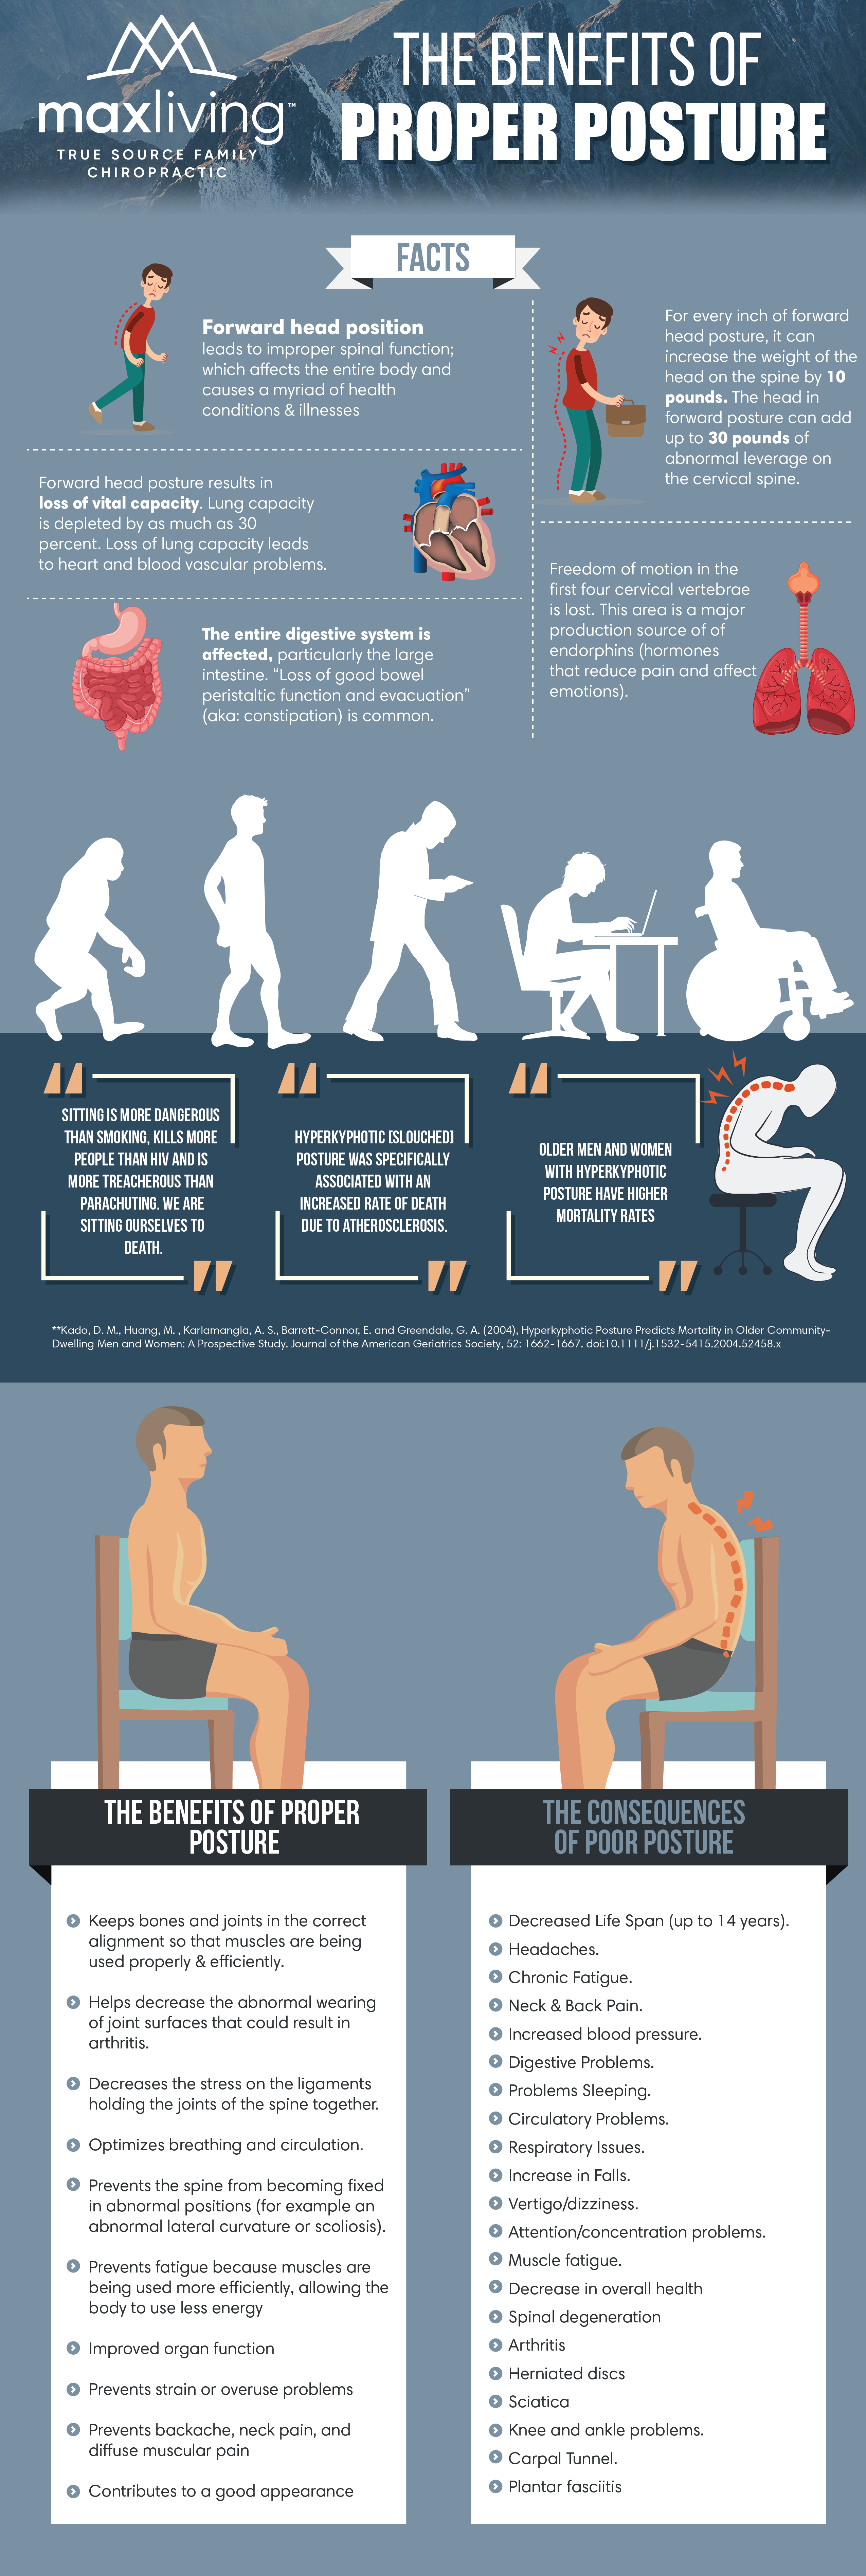 Ever See A Hunched Over Person Super Healthy Research Shows Having Bad Posture Excessive Phone Tablet Computer Usage Is Better Posture Bad Posture Postures